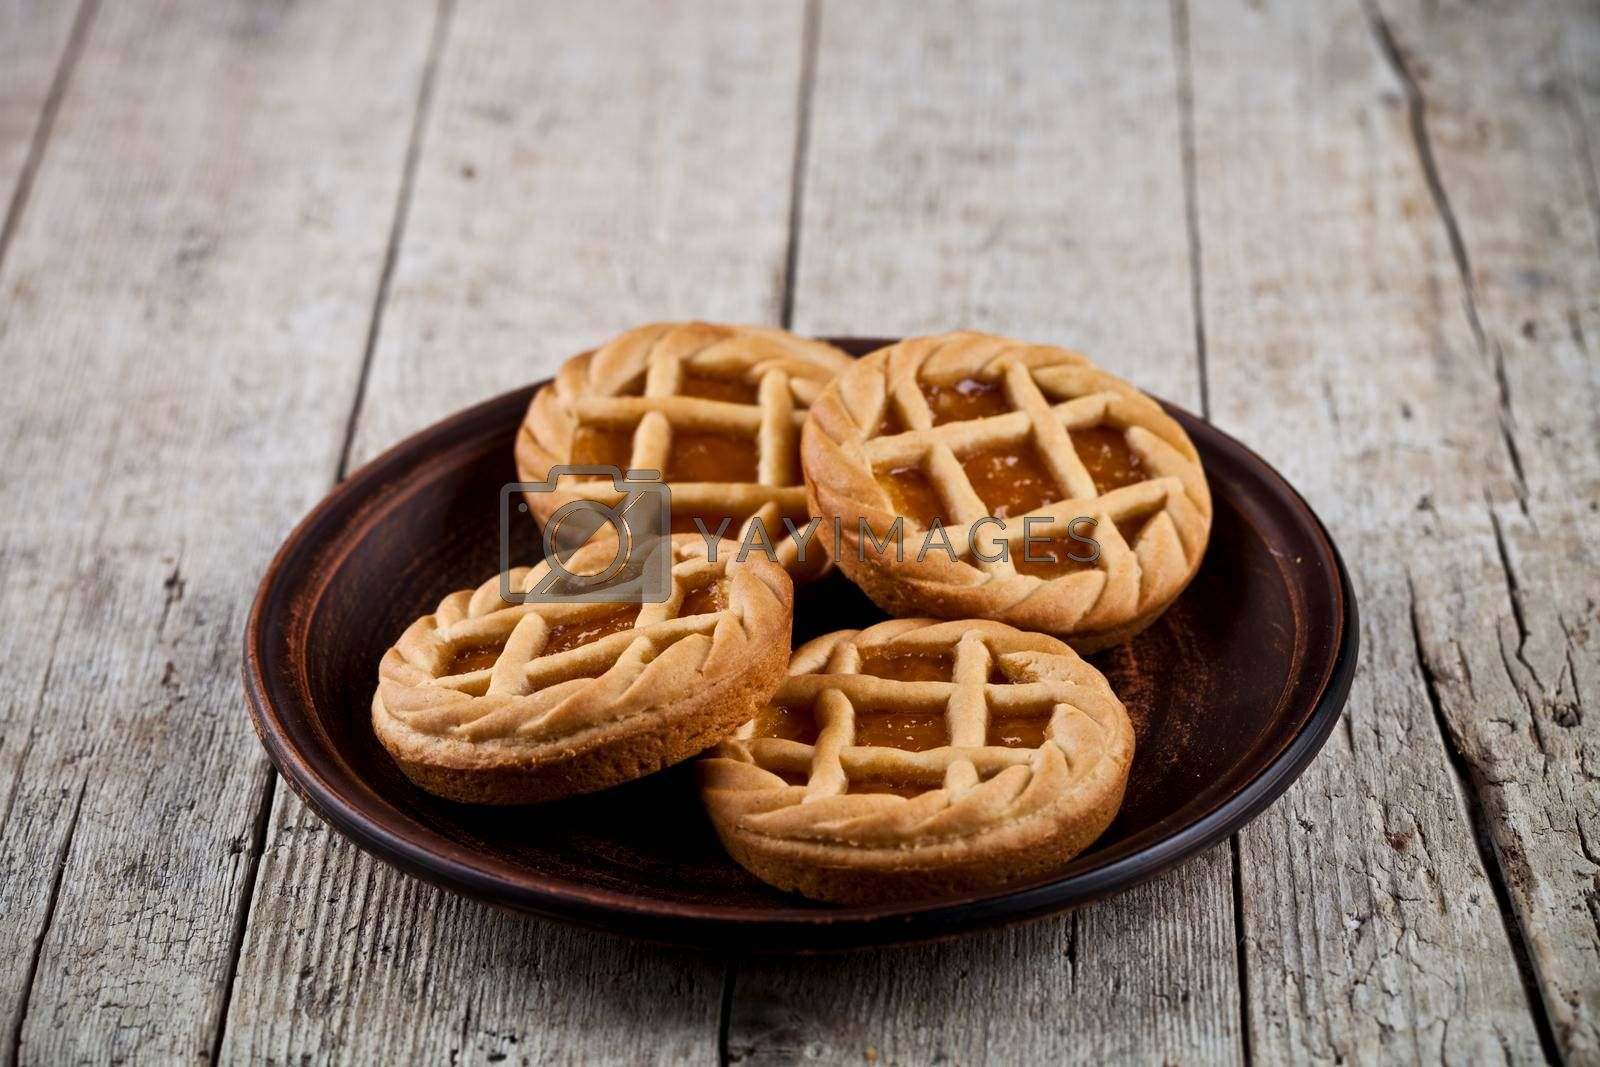 Fresh baked crostata with marmalade or apricot jam filling on brown plate on rustic wooden table background.